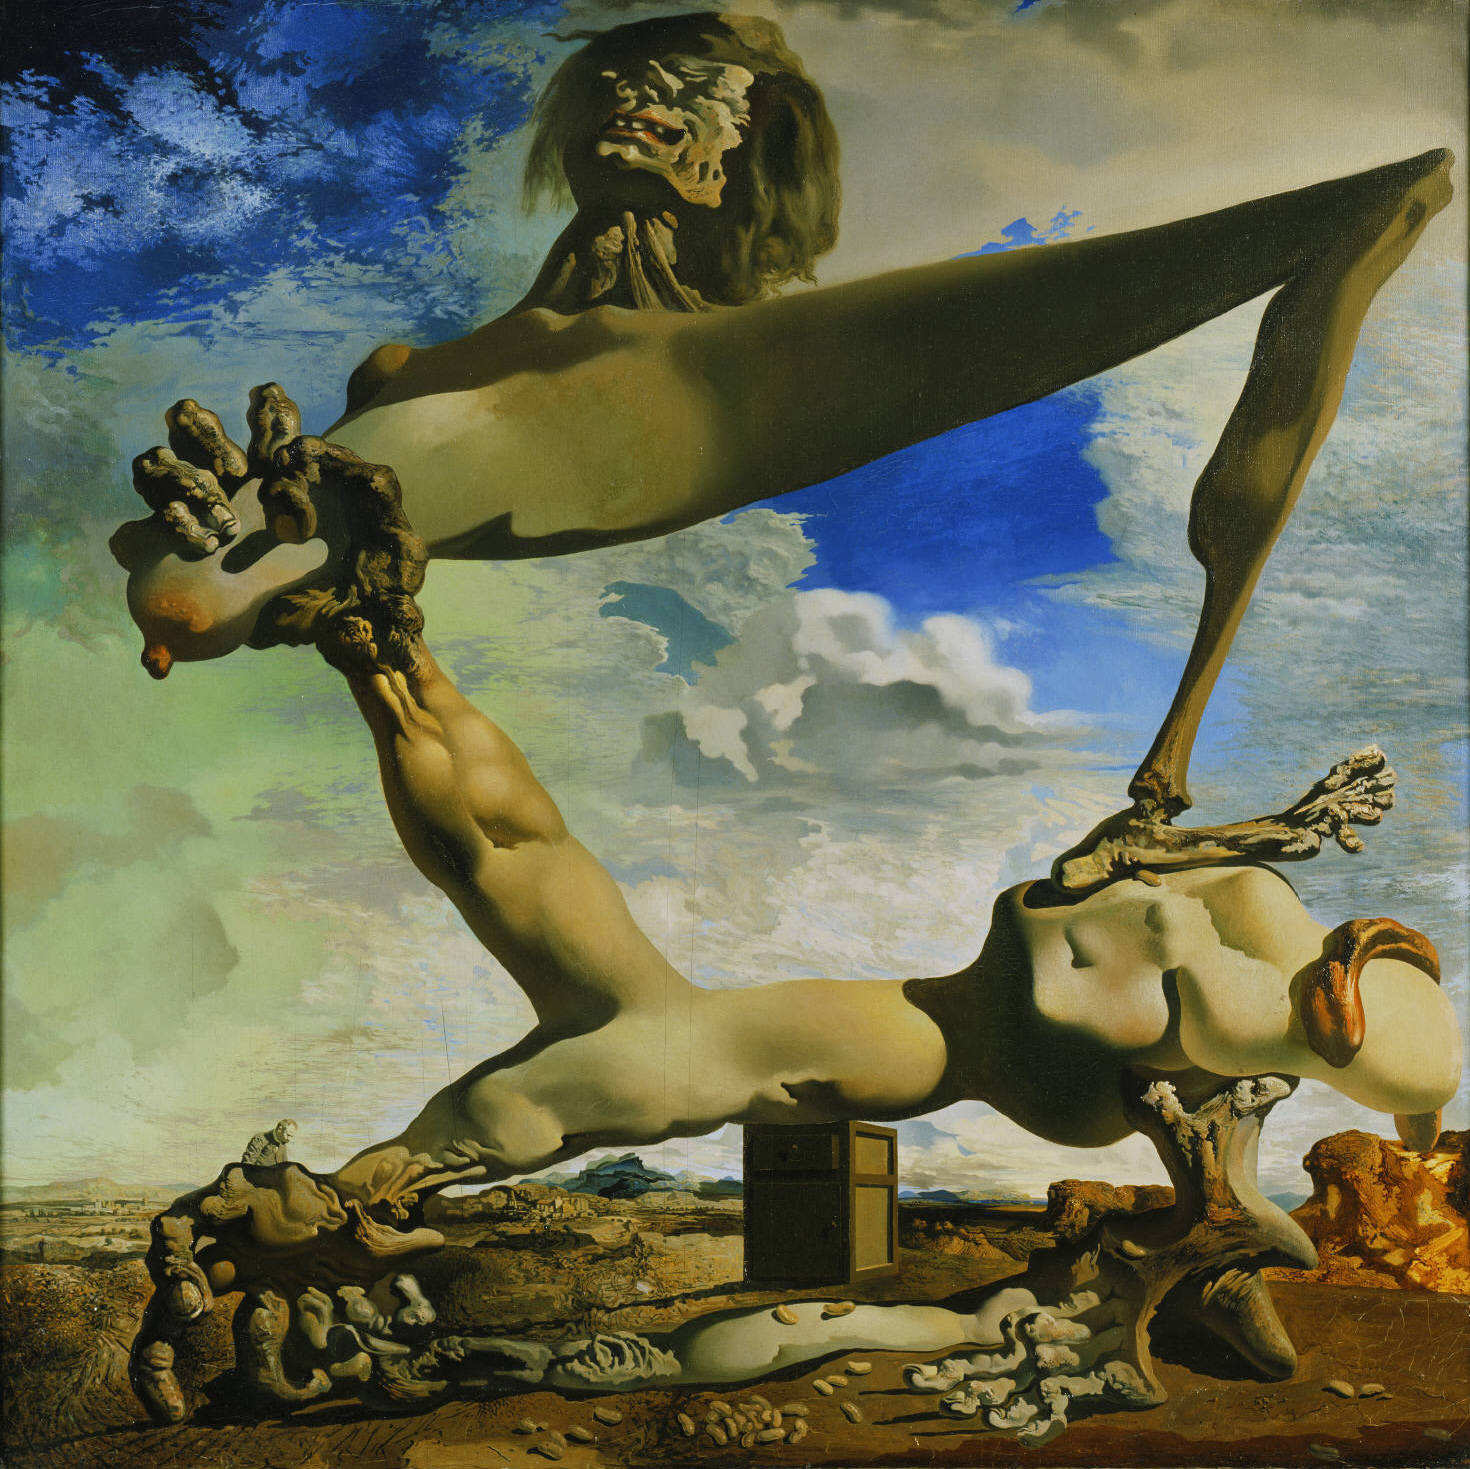 PAINTING SURREALISM Salvador Dali ART FOR YOUR WALLPAPER